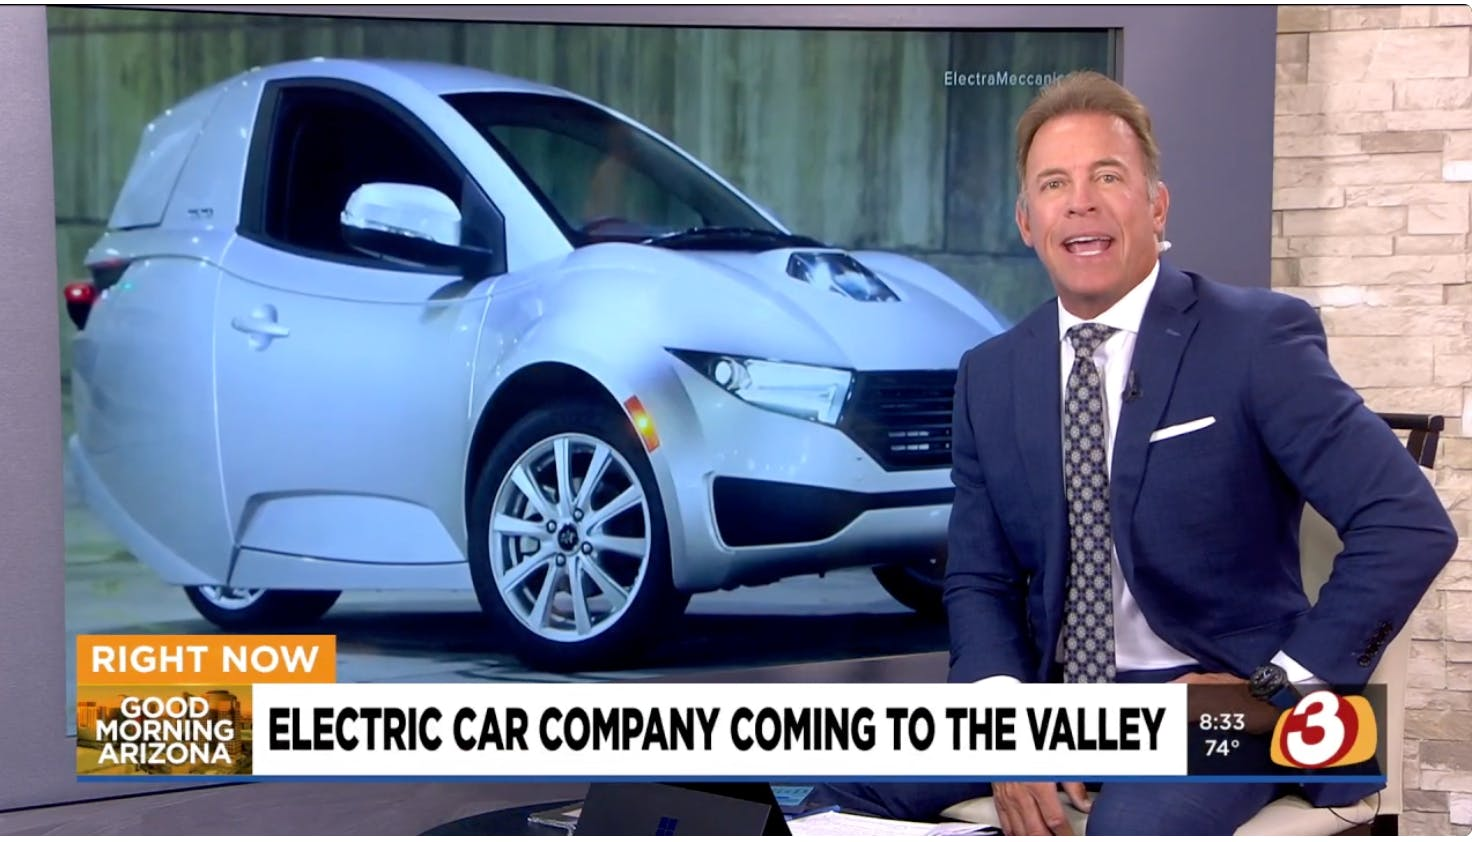 AZ Family: ElectraMeccanica is coming to Mesa